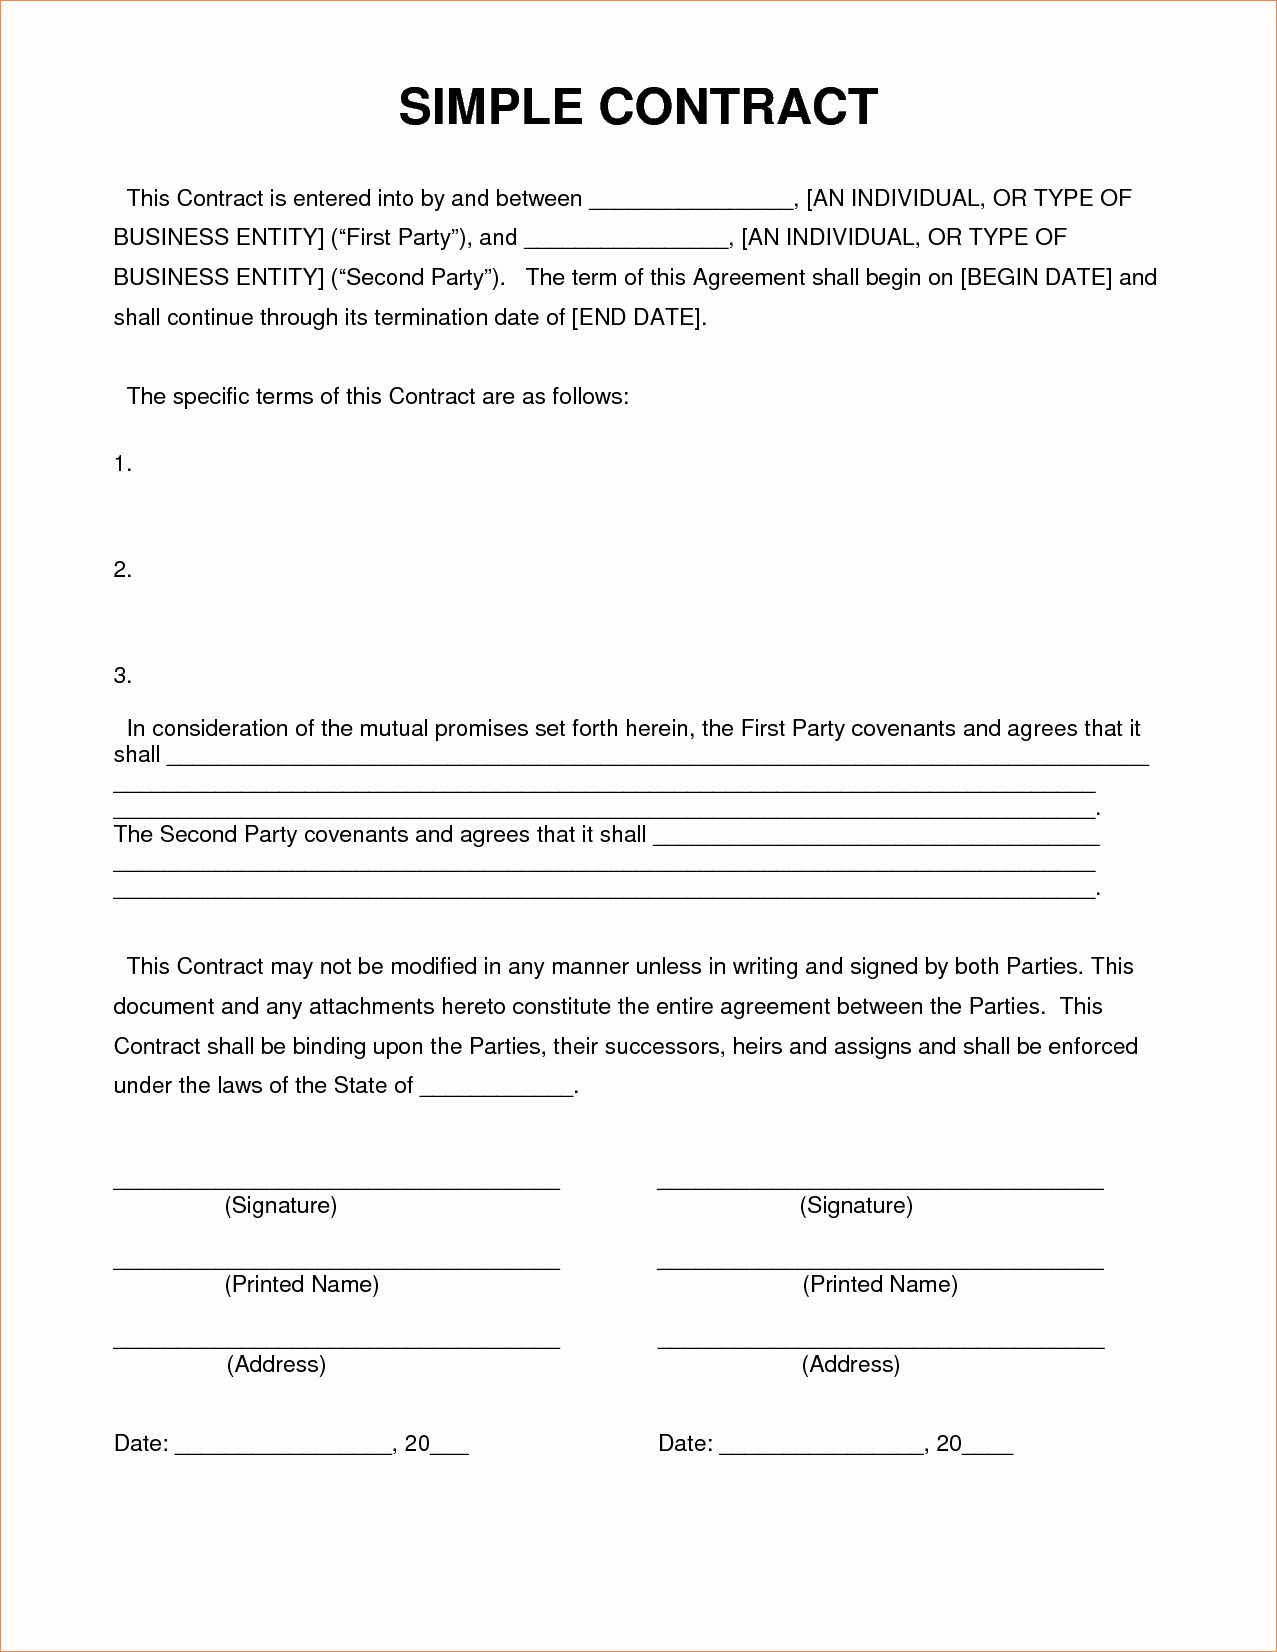 4 Simple Contract Templatereport Template Document